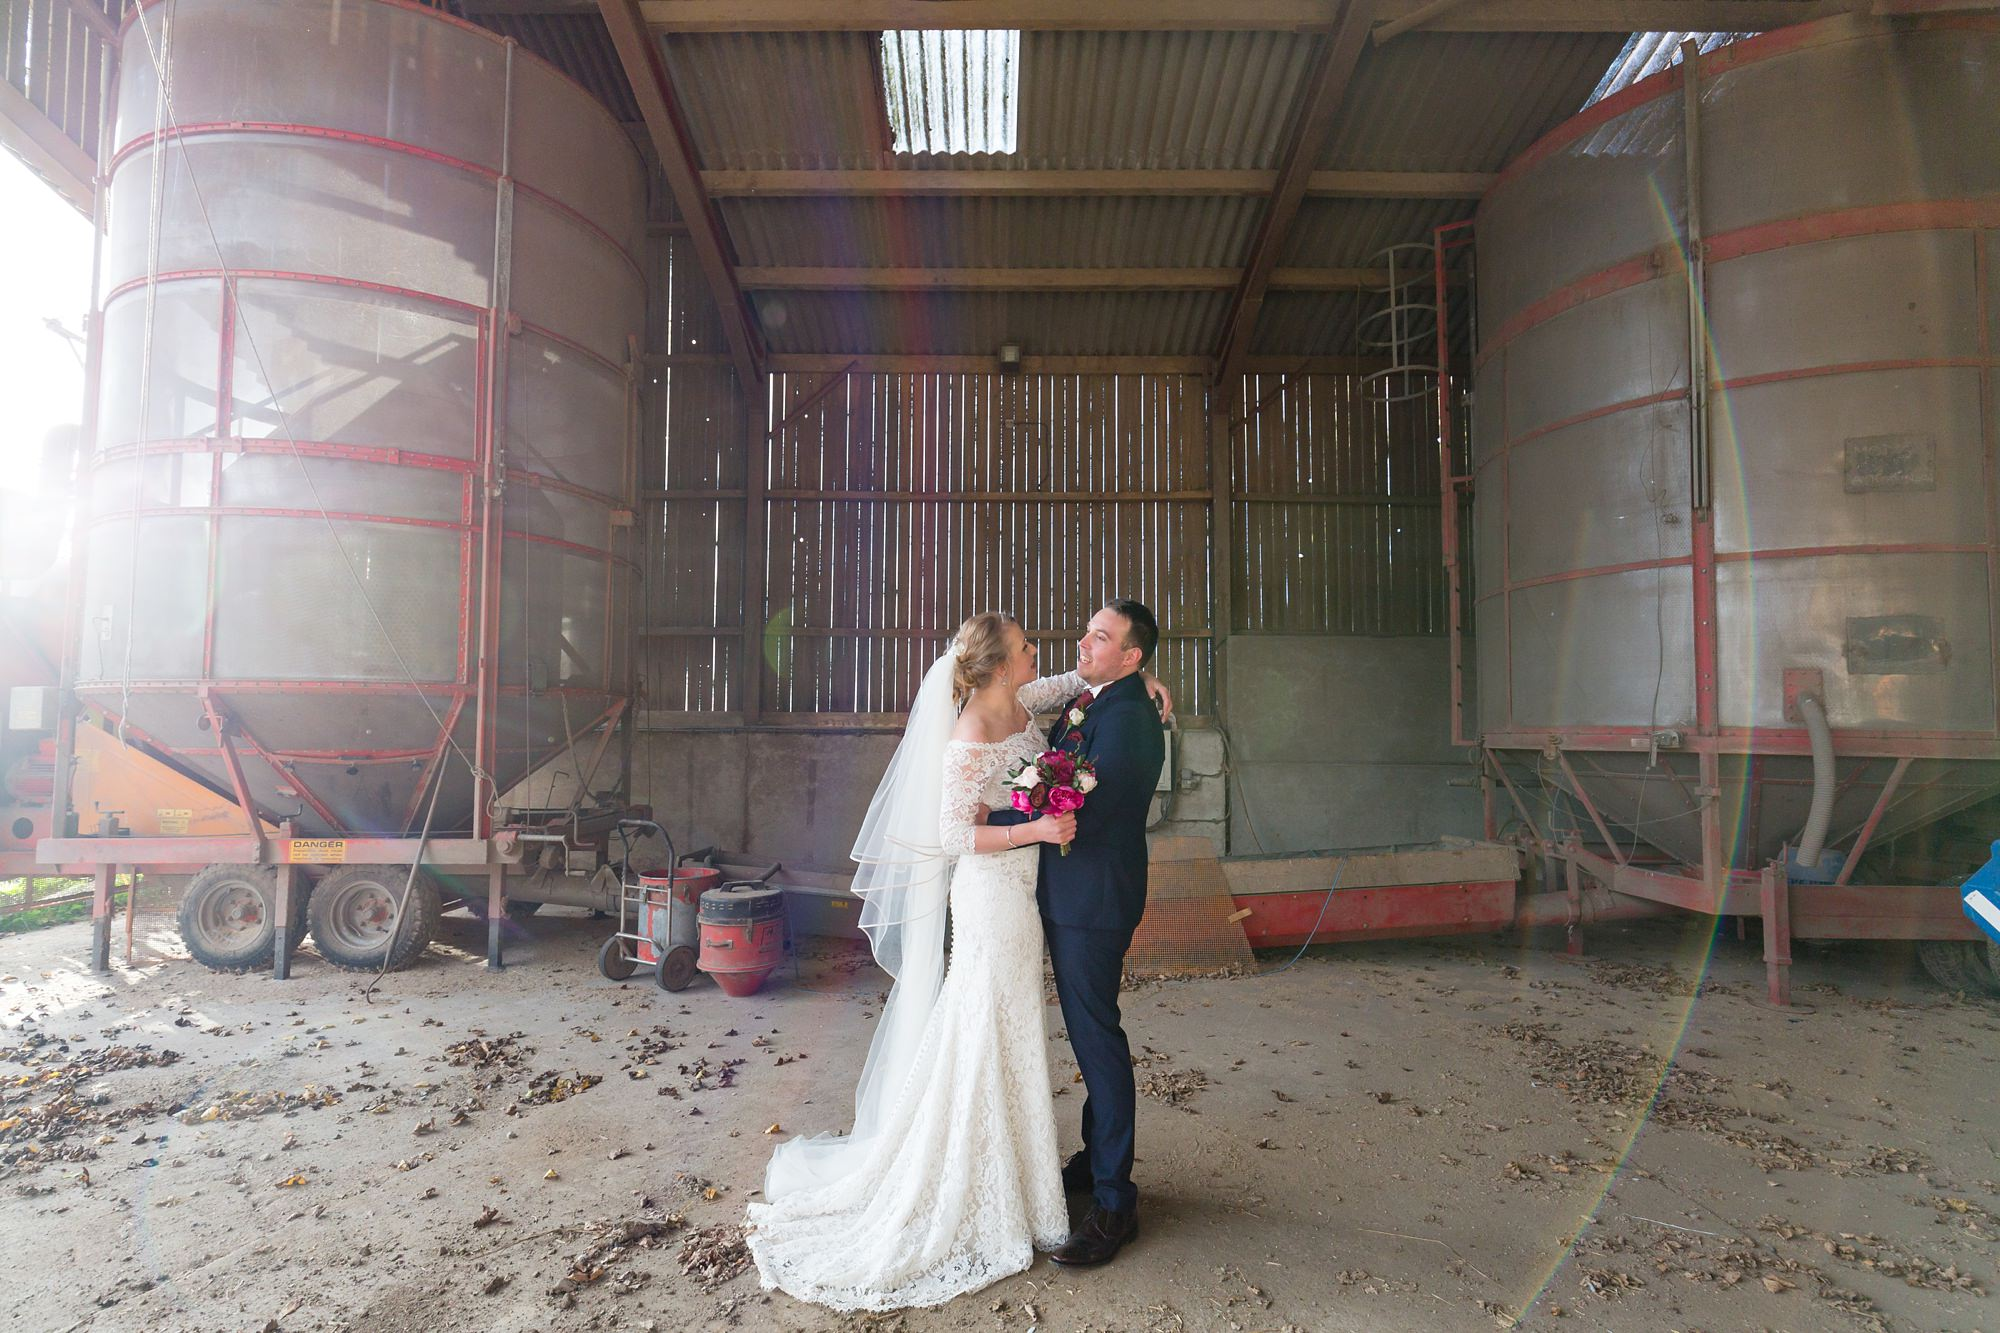 Bride & groom in the barn at The Normans wedding venue in York